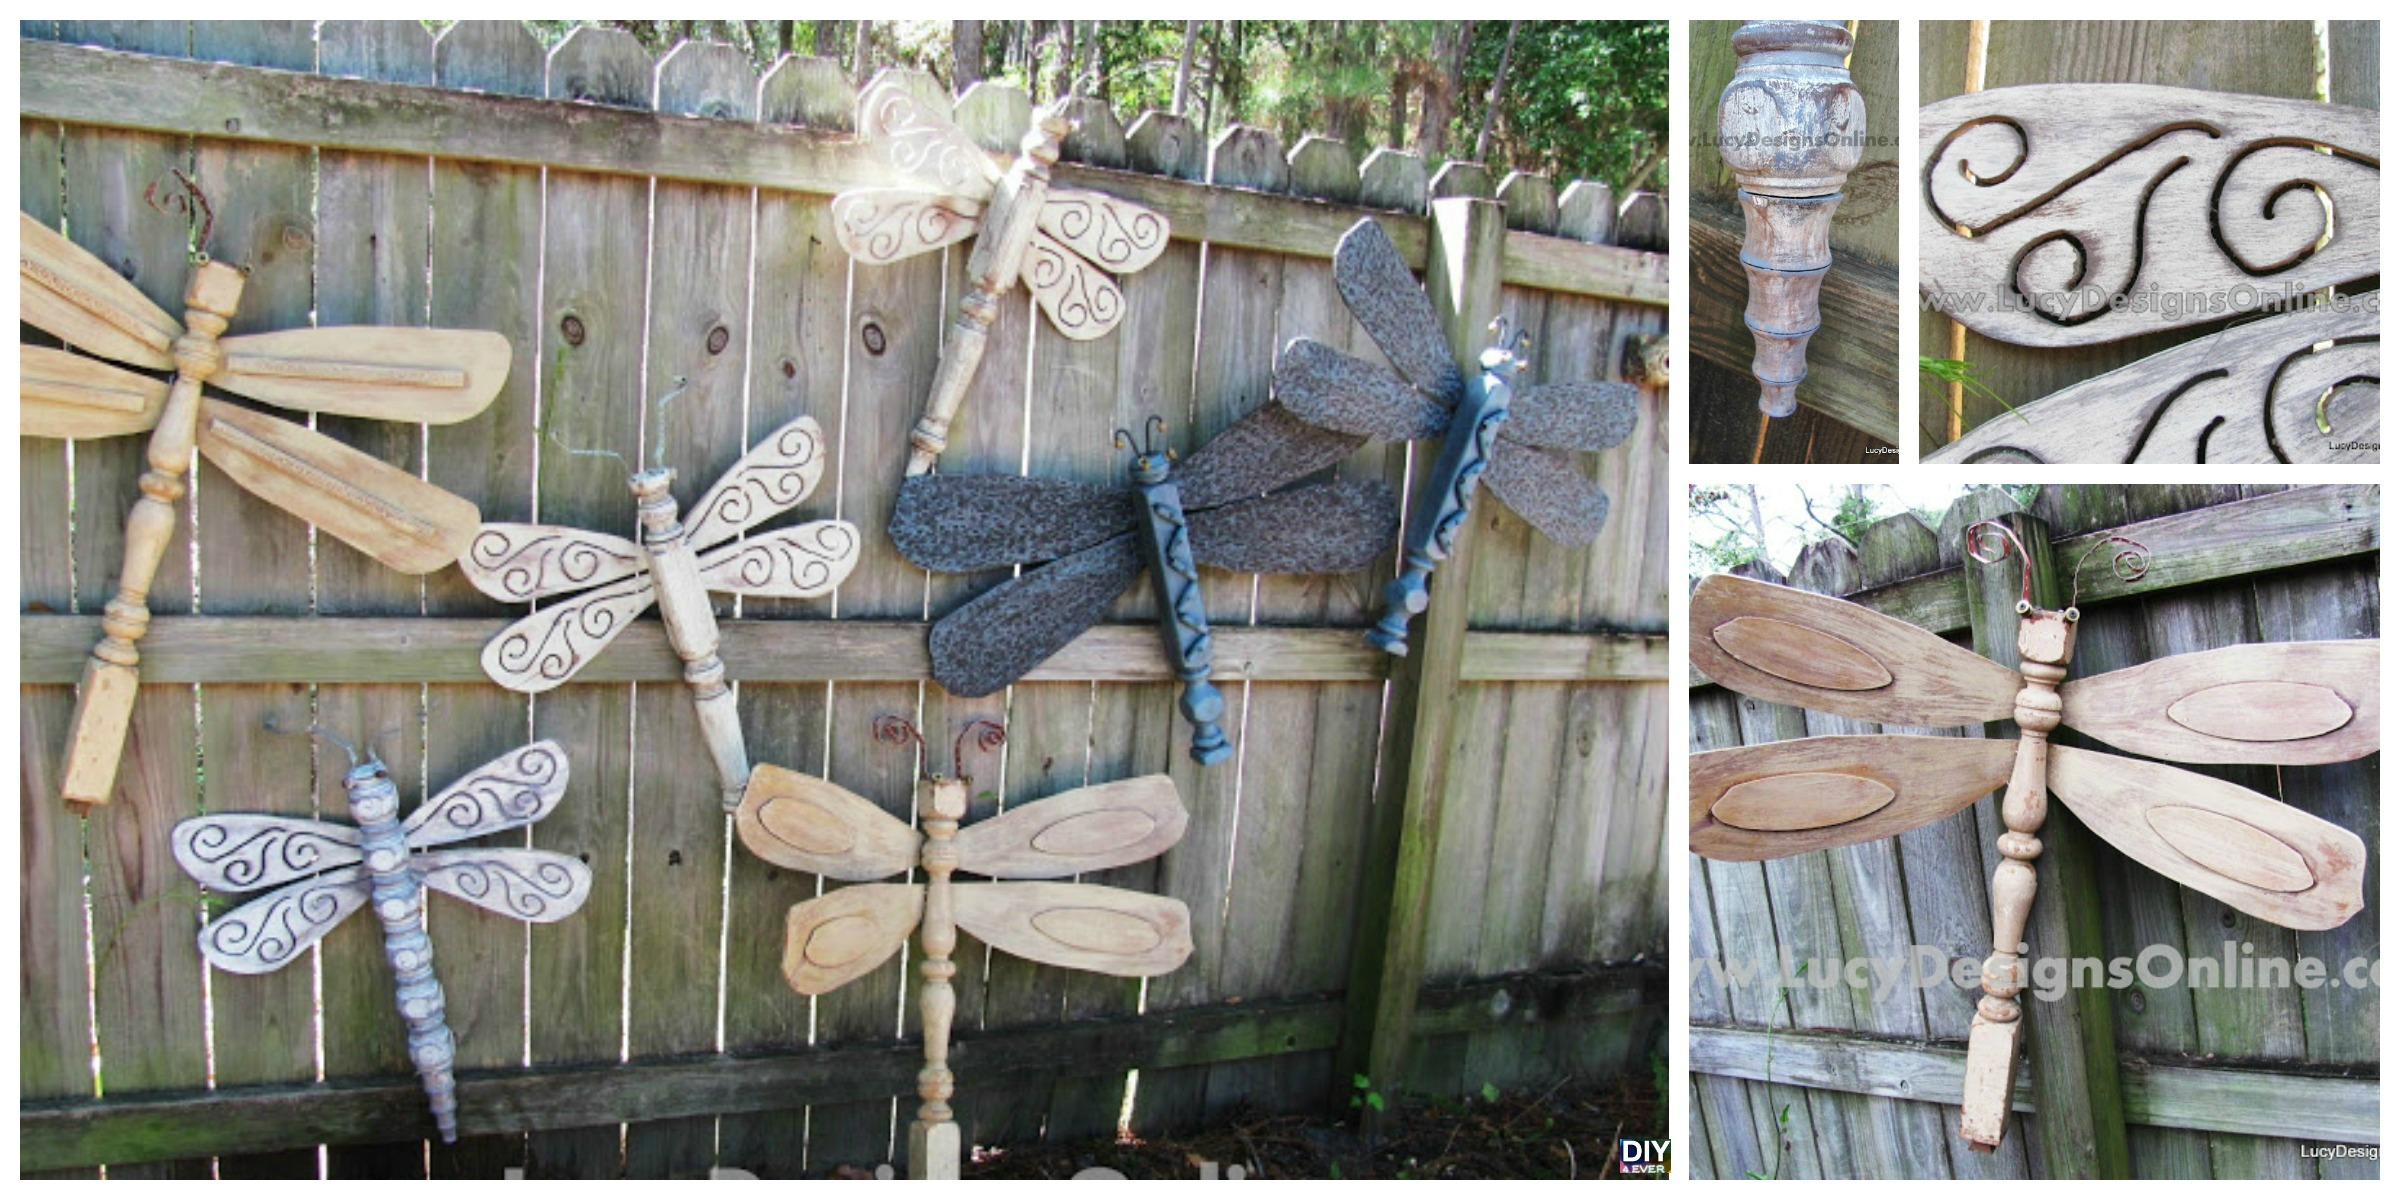 DIY Table Leg Dragonflies – Wall Art